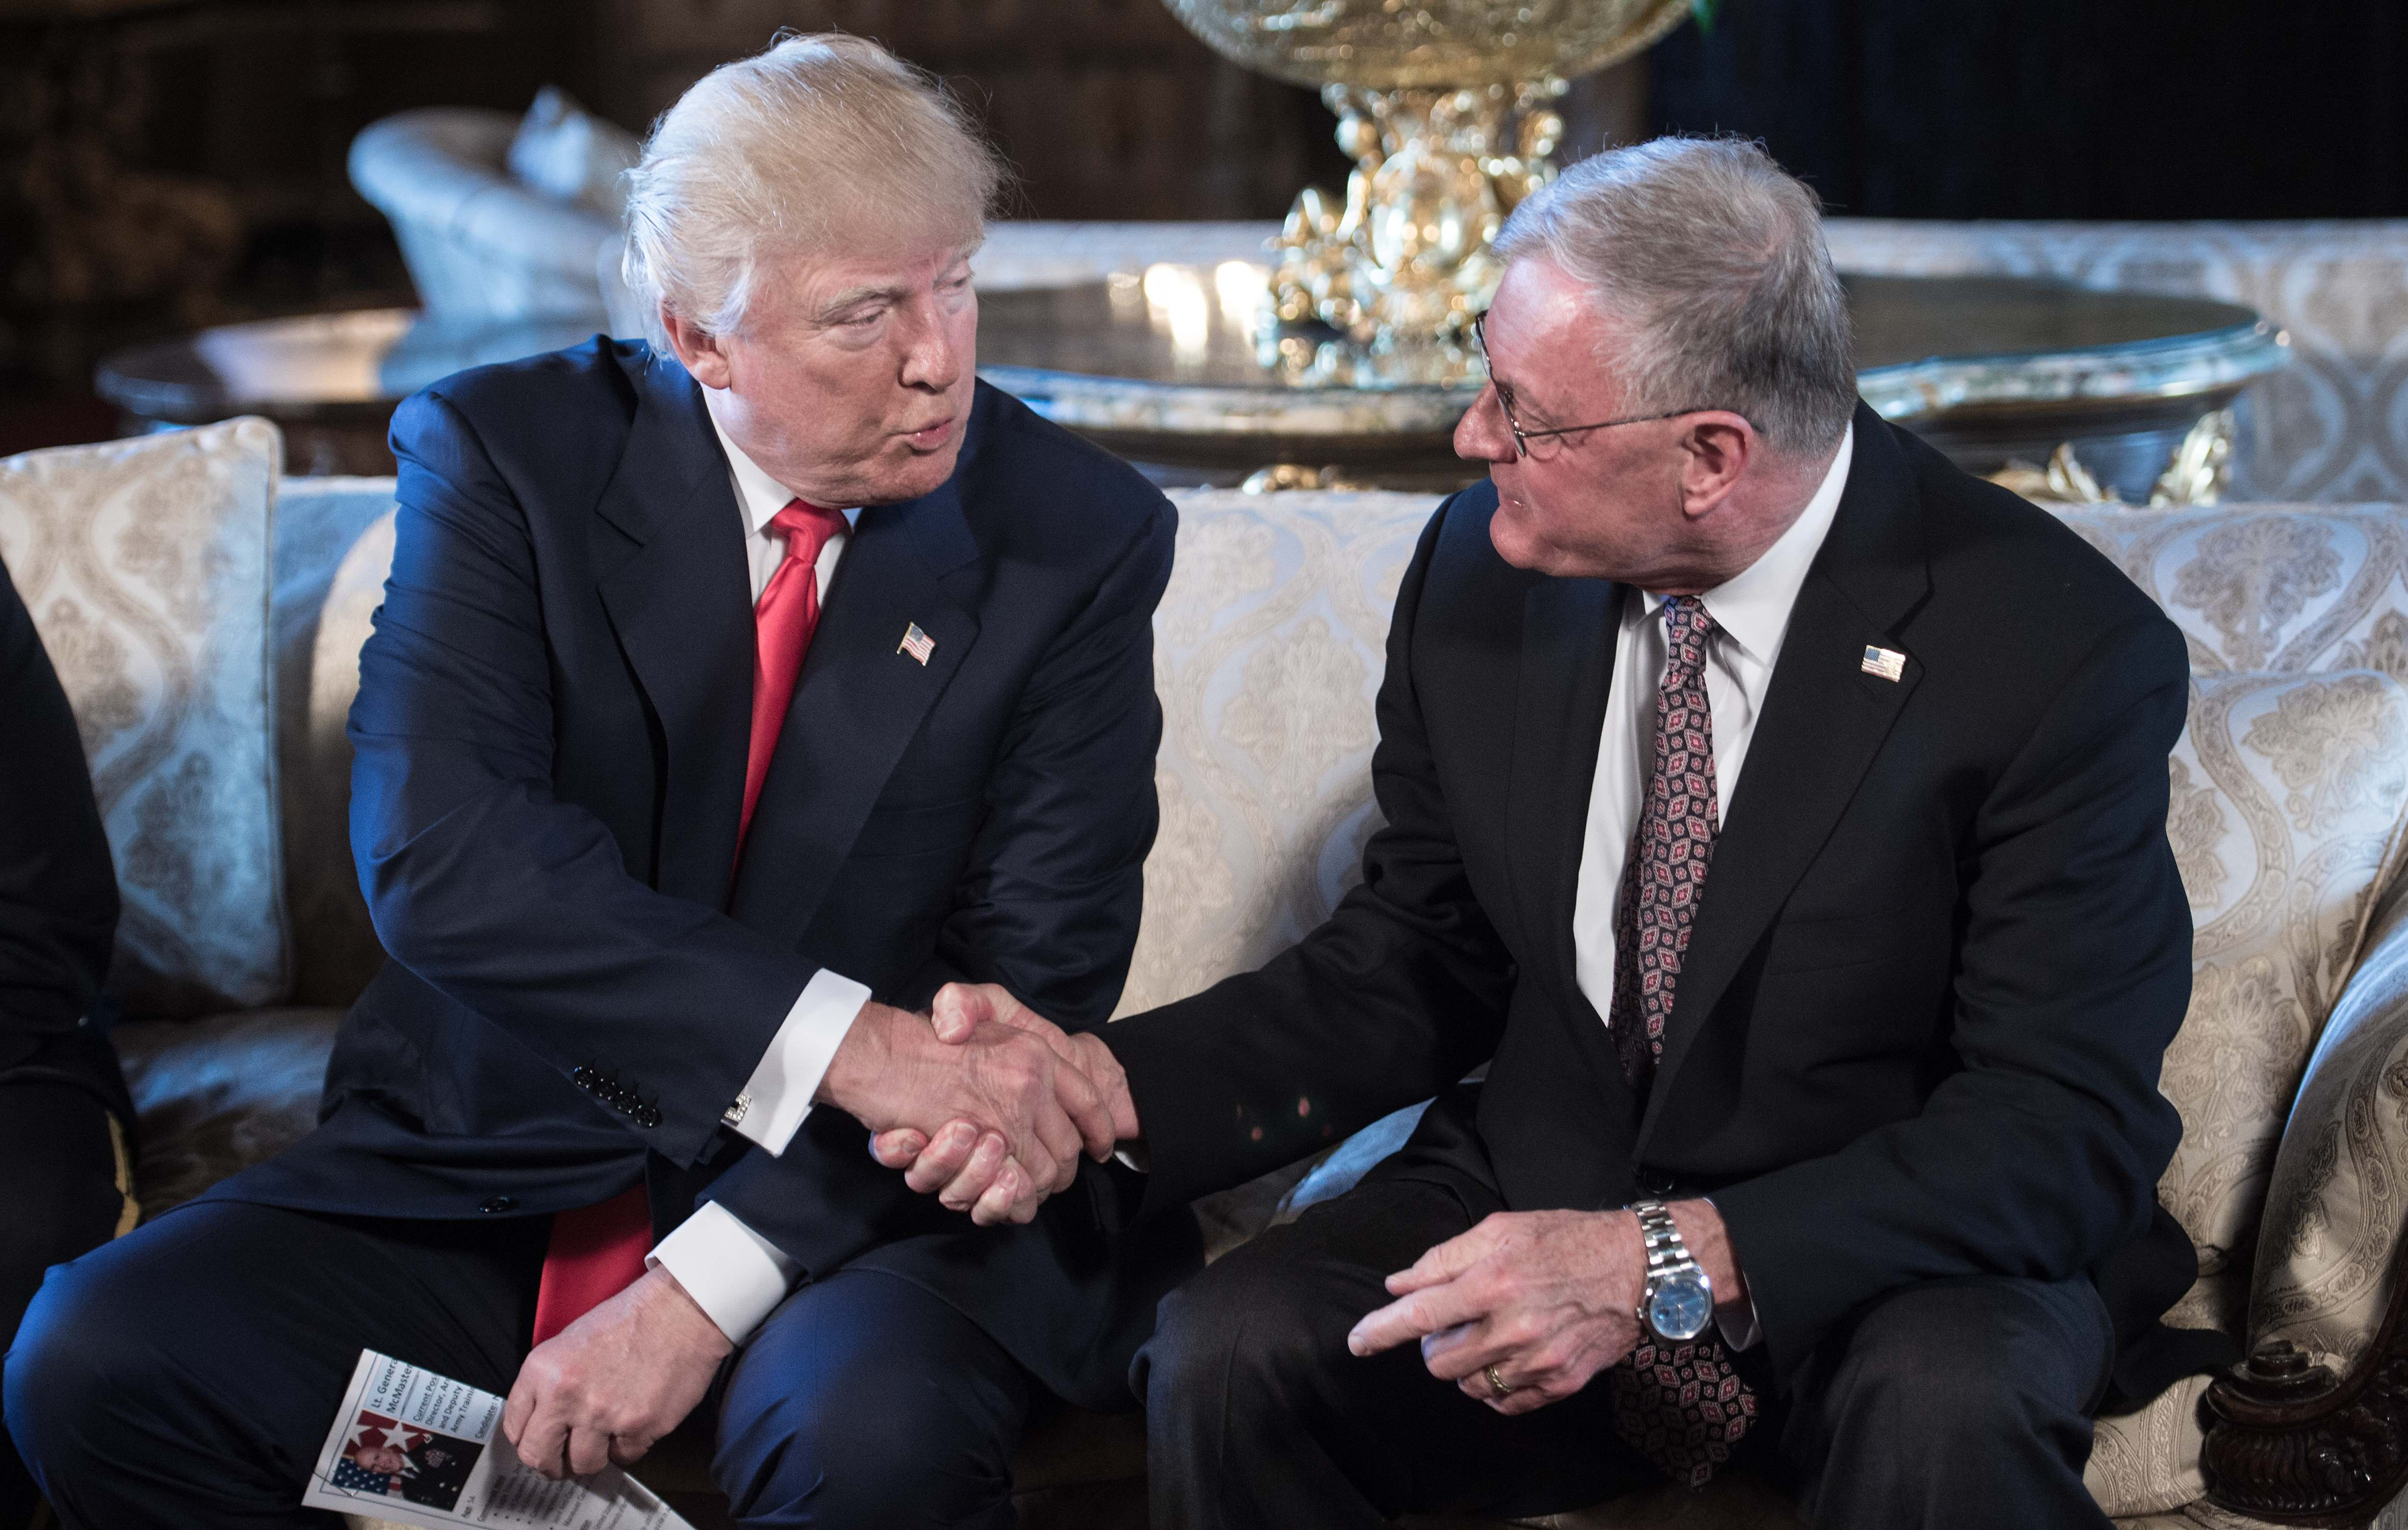 US President Donald Trump shakes hands with Keith Kellogg (R) after announcing him as chief of staff to national security adviser US Army Lieutenant General H.R. McMaster at his Mar-a-Lago resort in Palm Beach, Florida, on February 20, 2017. (NICHOLAS KAMM/AFP/Getty Images)